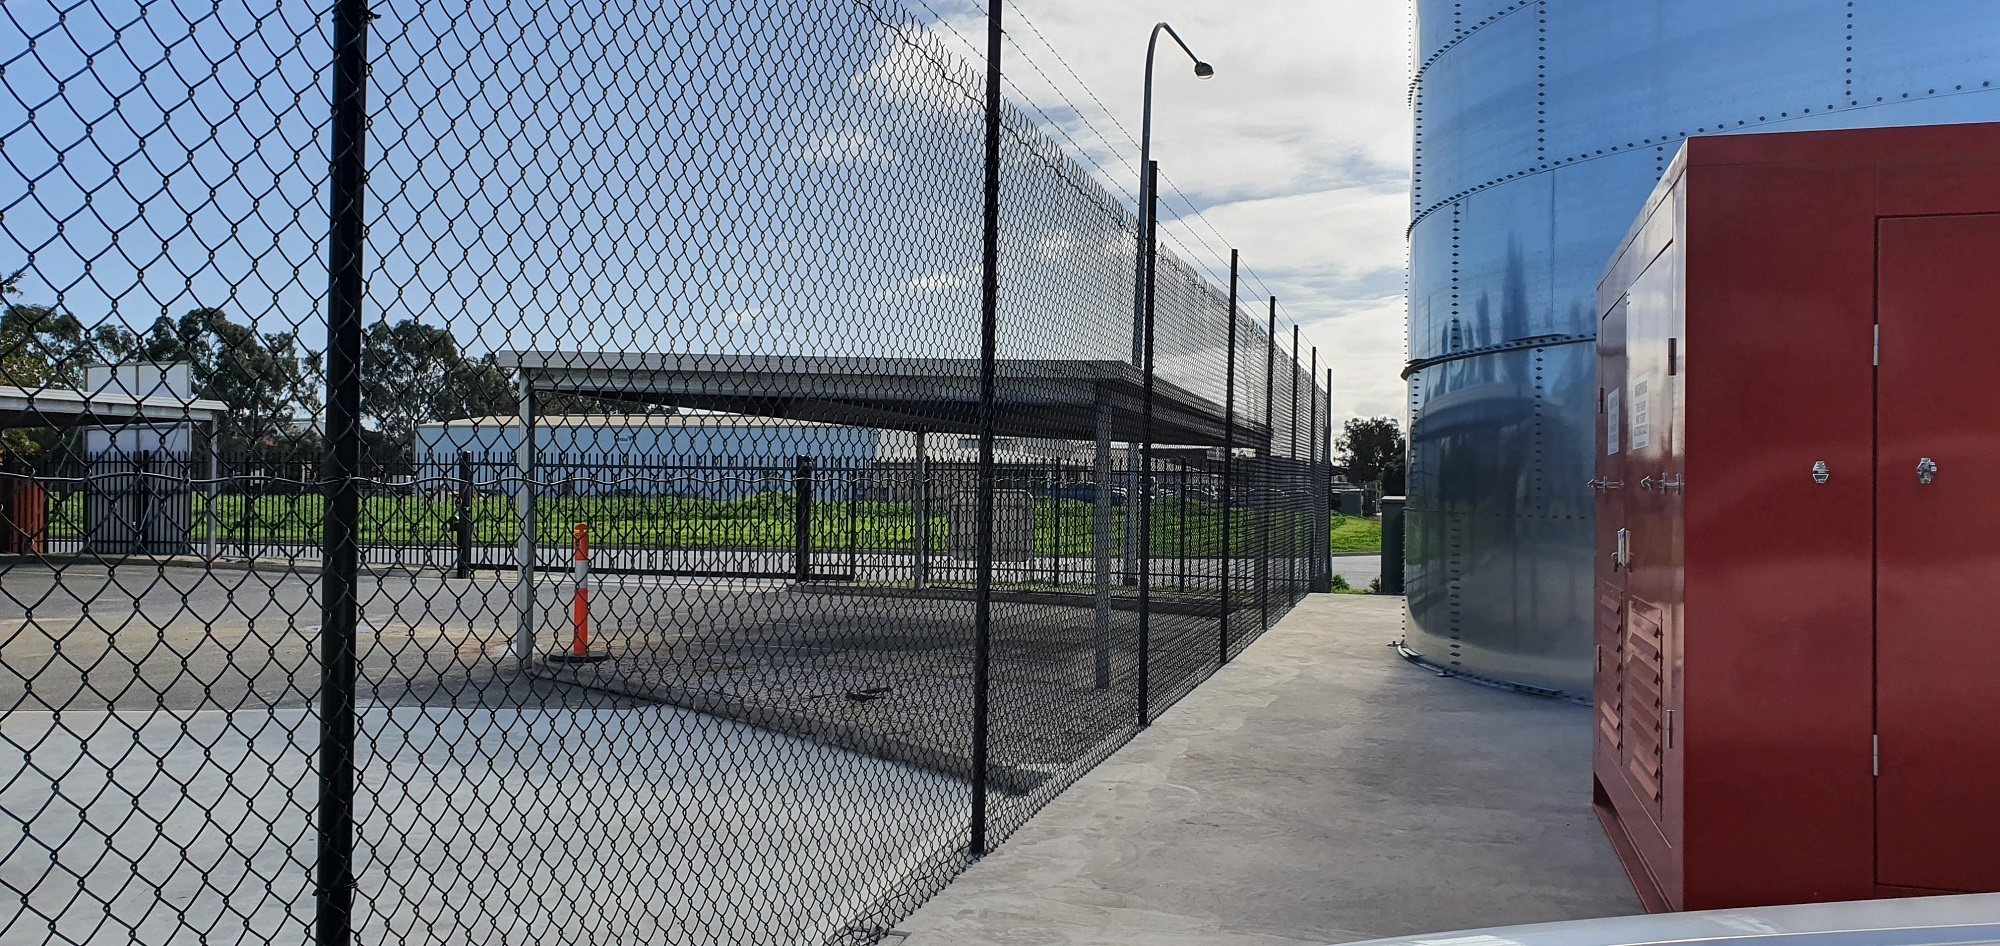 Commercial Fencing Adelaide Fence Centre Chain Mesh Security Fence Wingfield 10